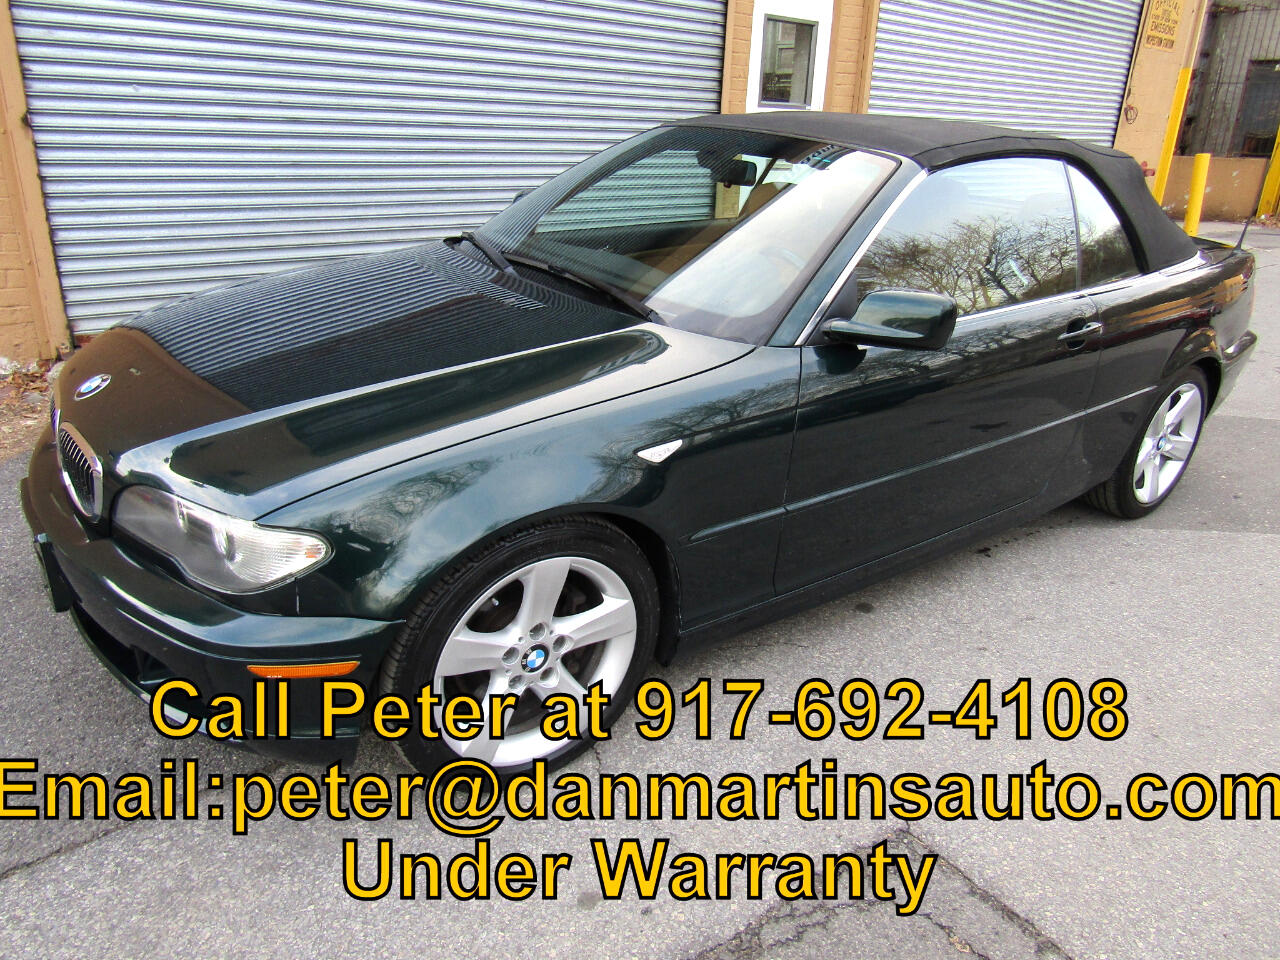 2005 BMW 3 Series 325Ci 2dr Convertible